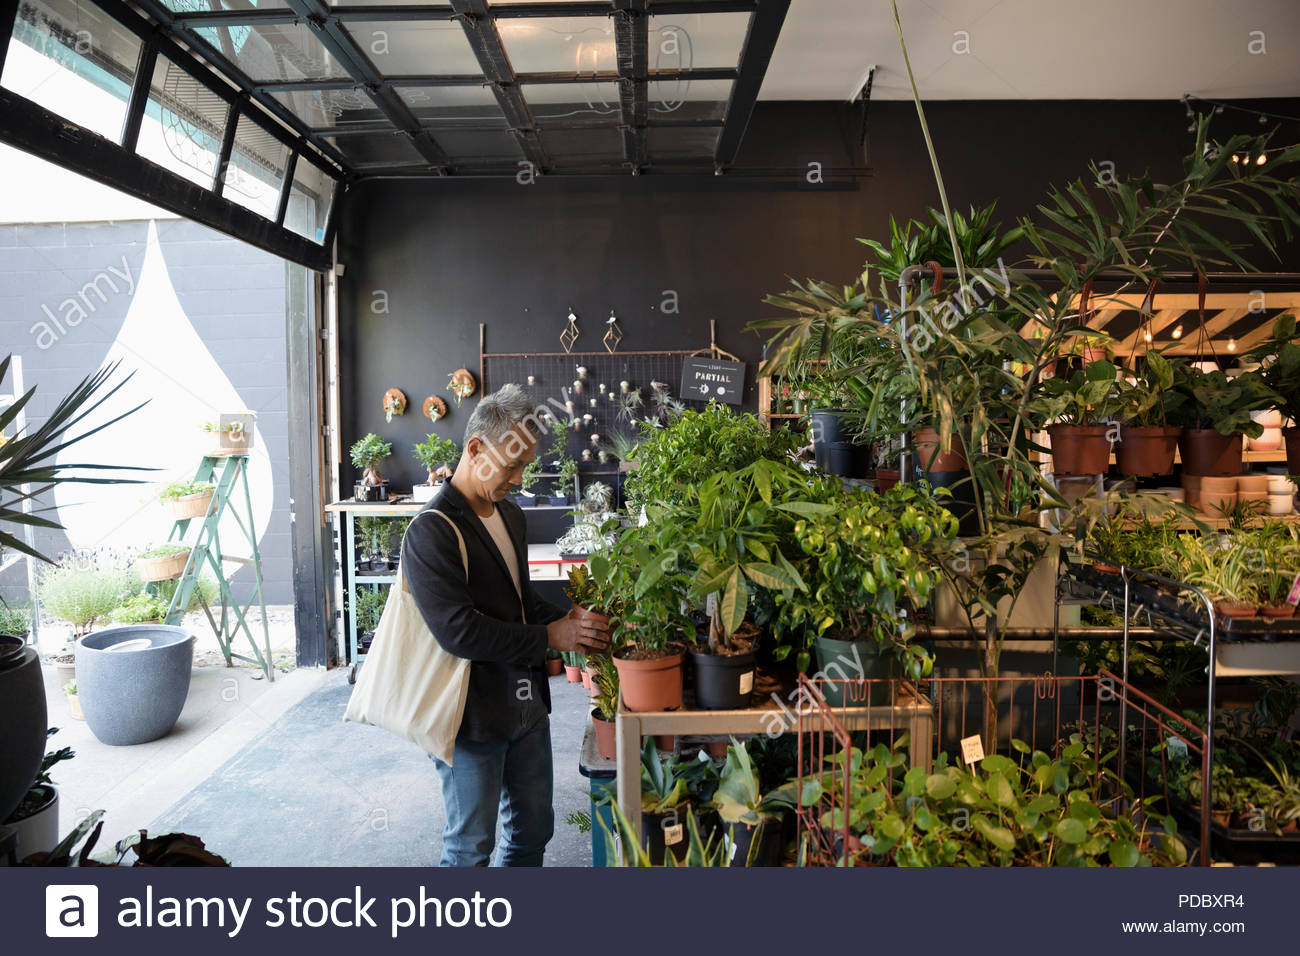 Mature man shopping in plant shop - Stock Image